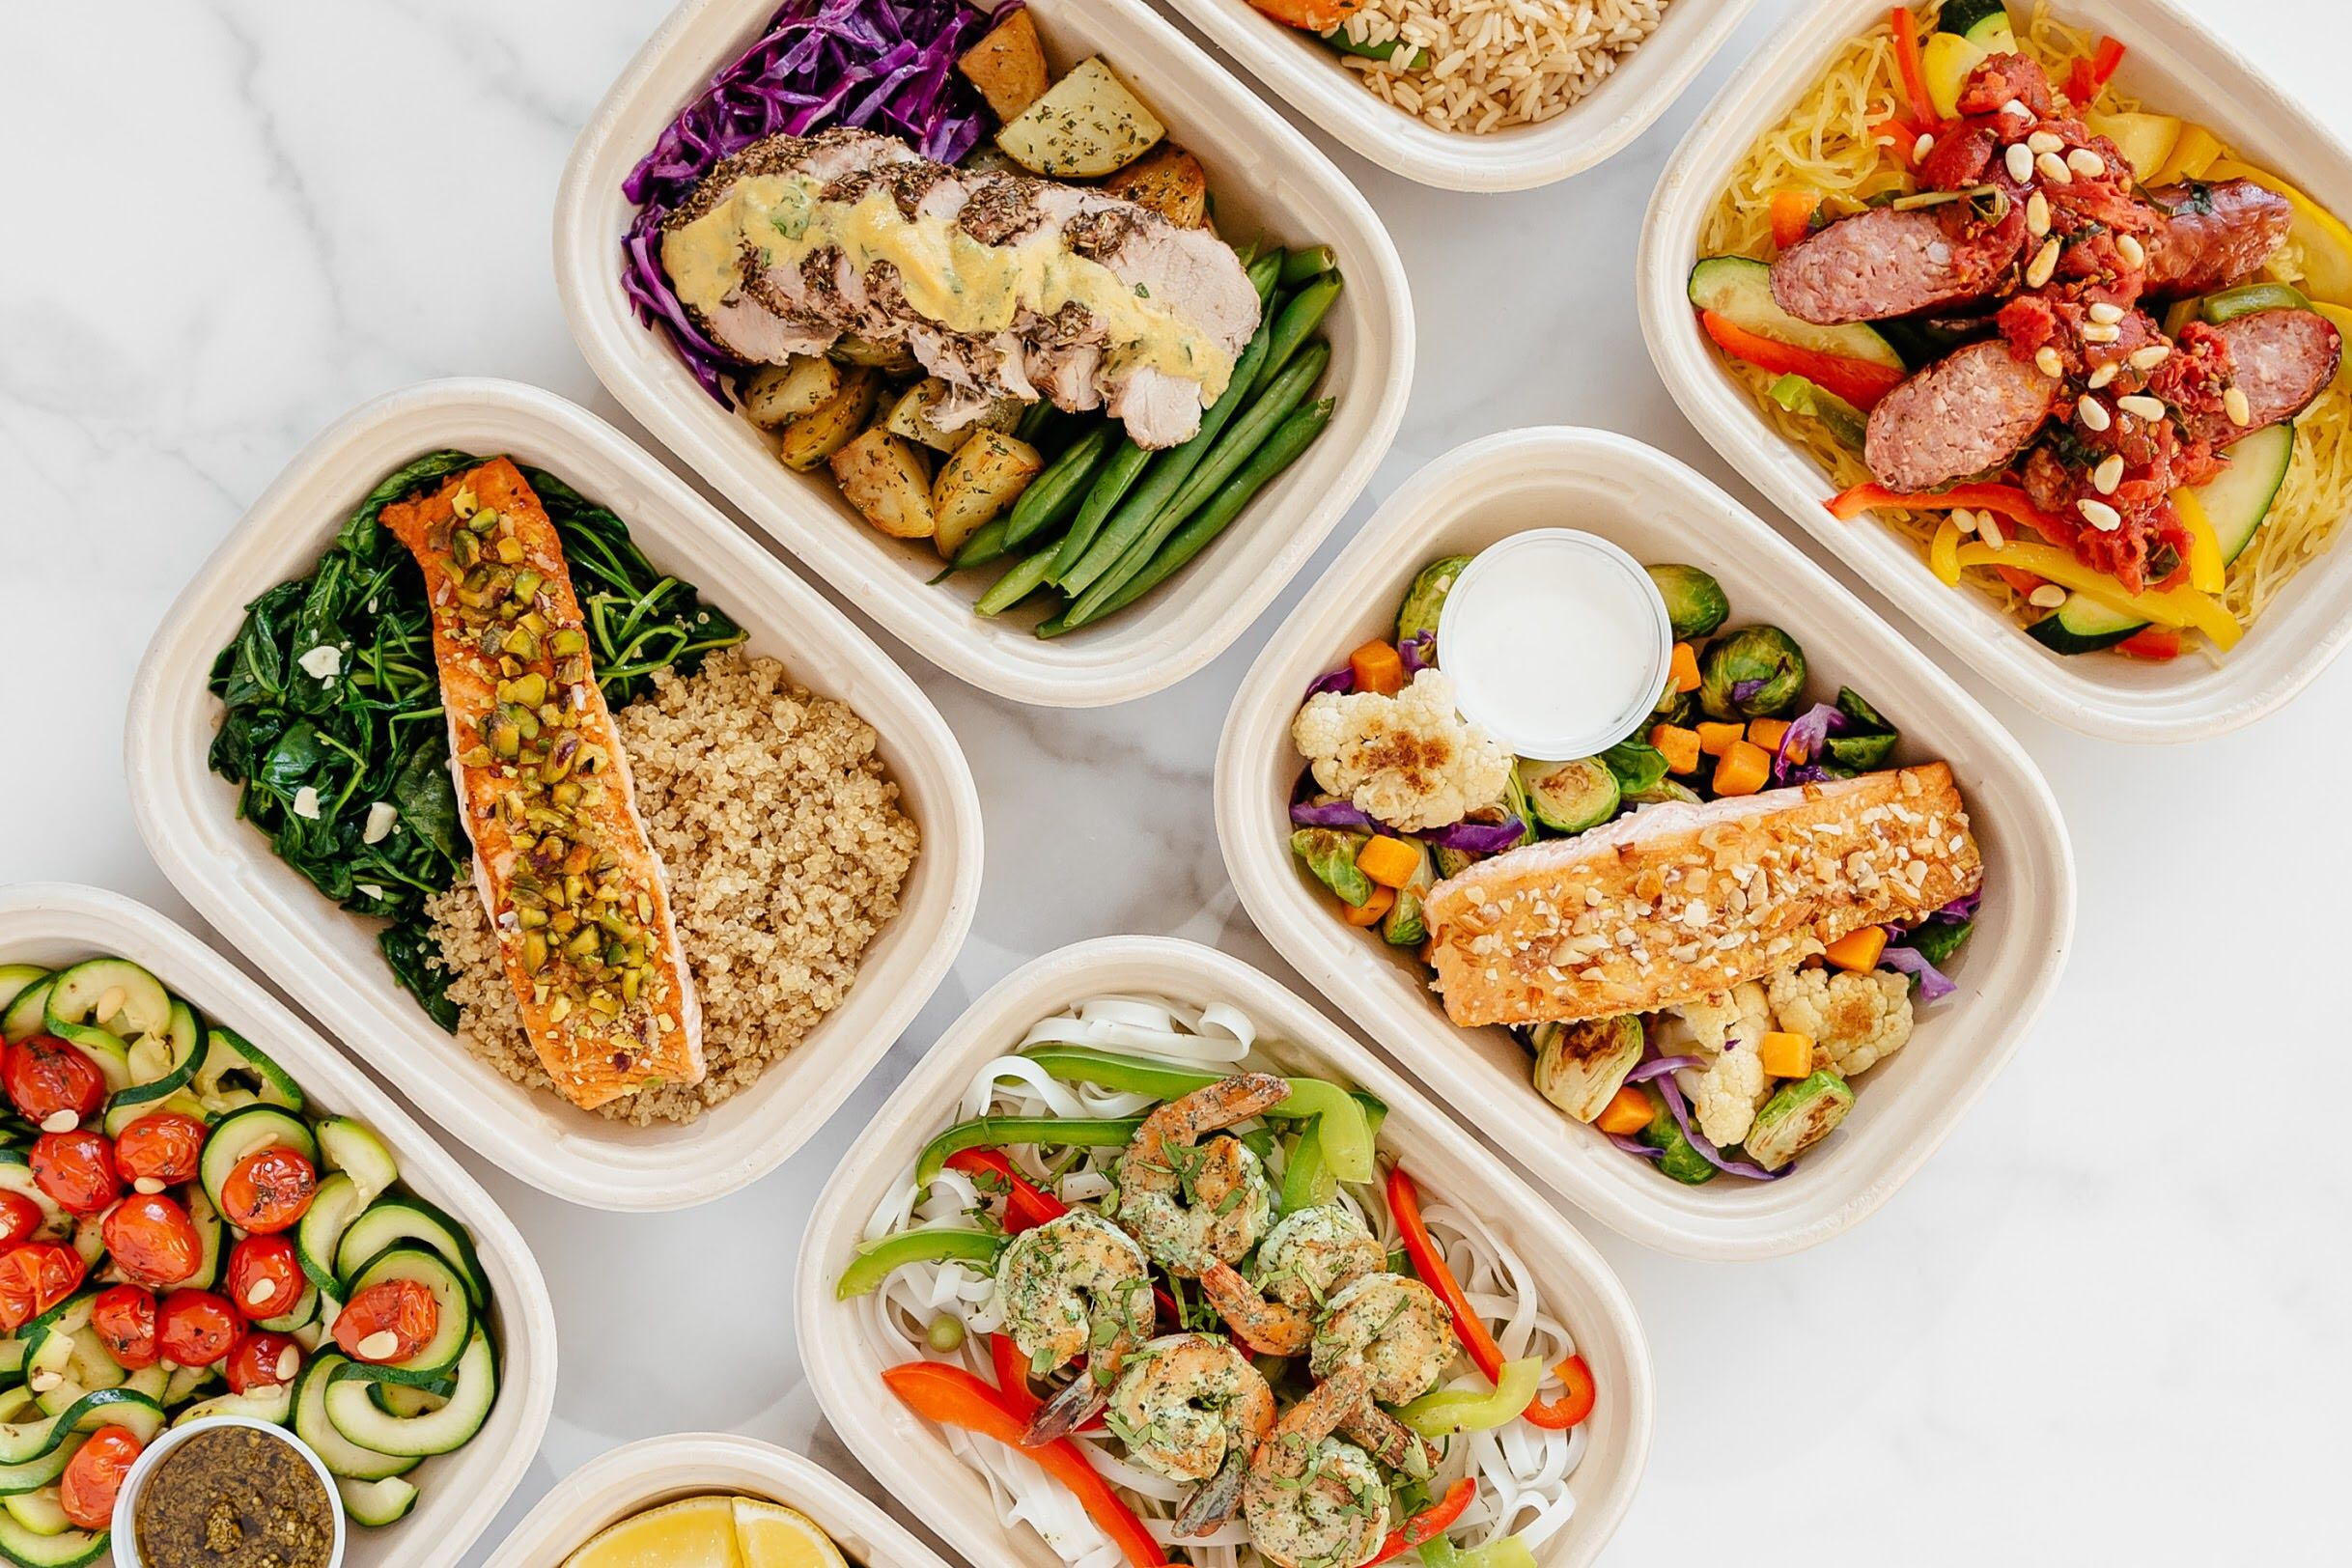 ready meals delivered